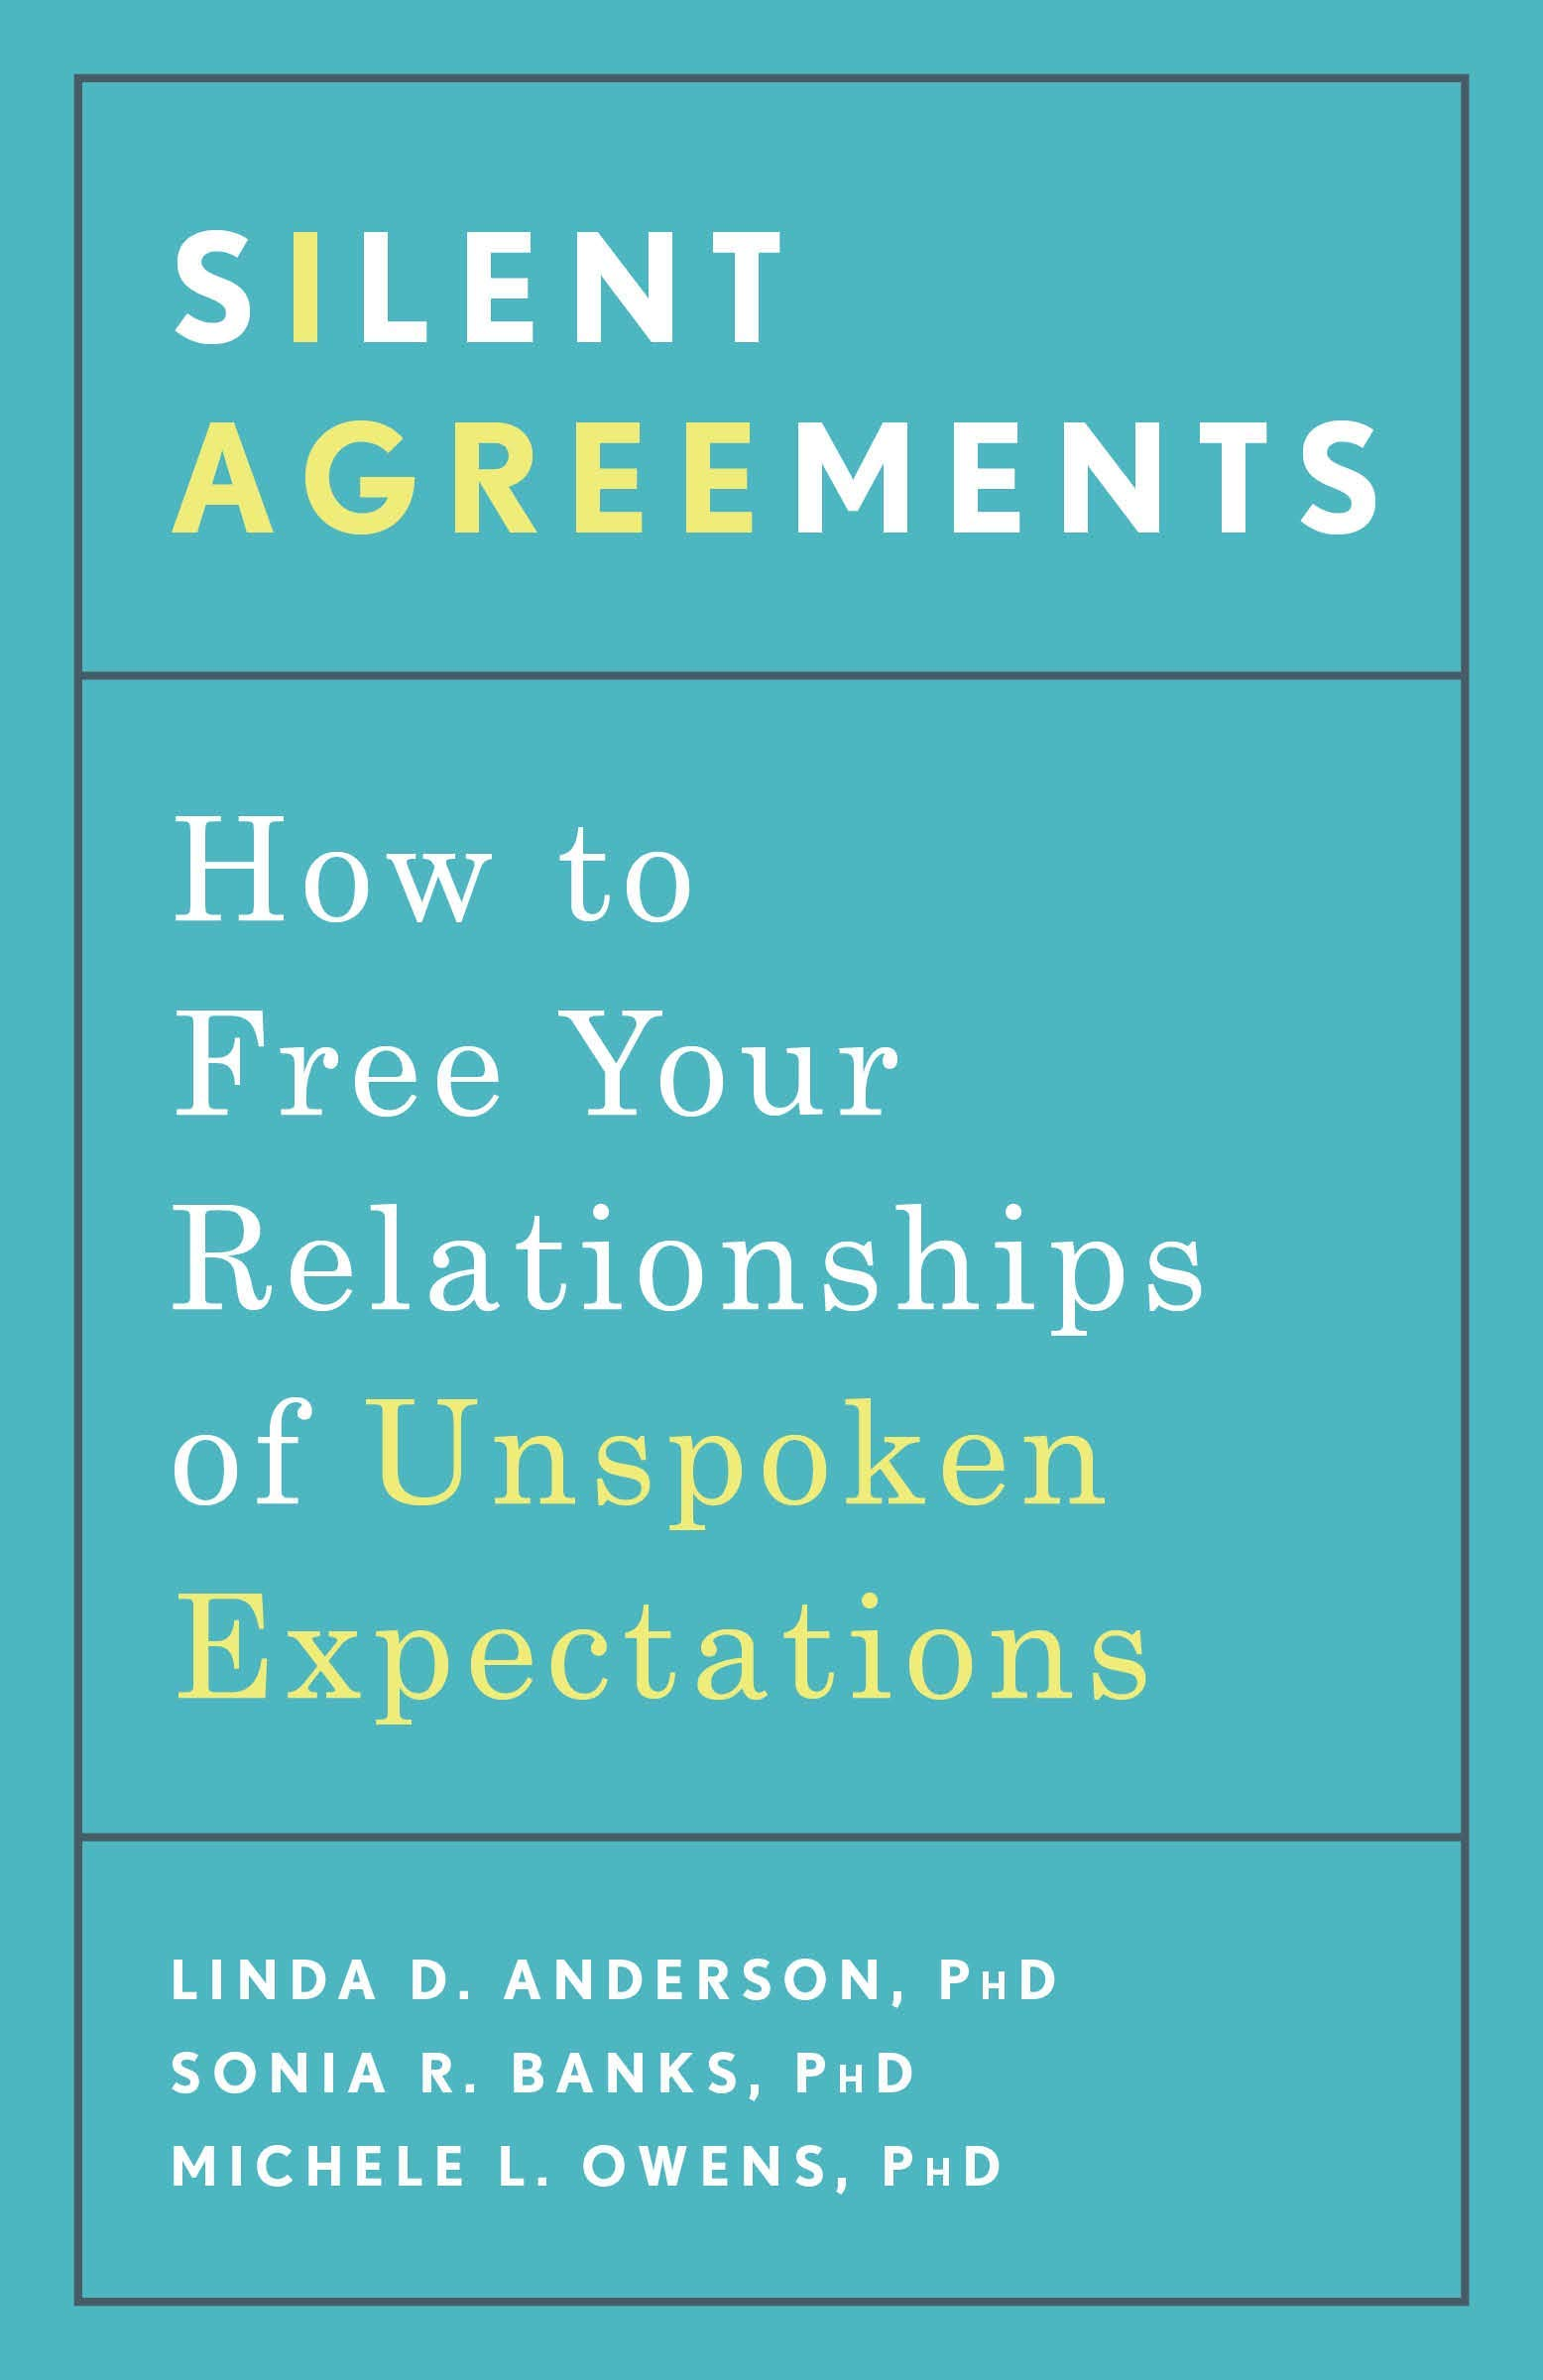 0844adf3c3 Silent Agreements  How to Free Your Relationships of Unspoken Expectations   Linda D. Anderson PhD